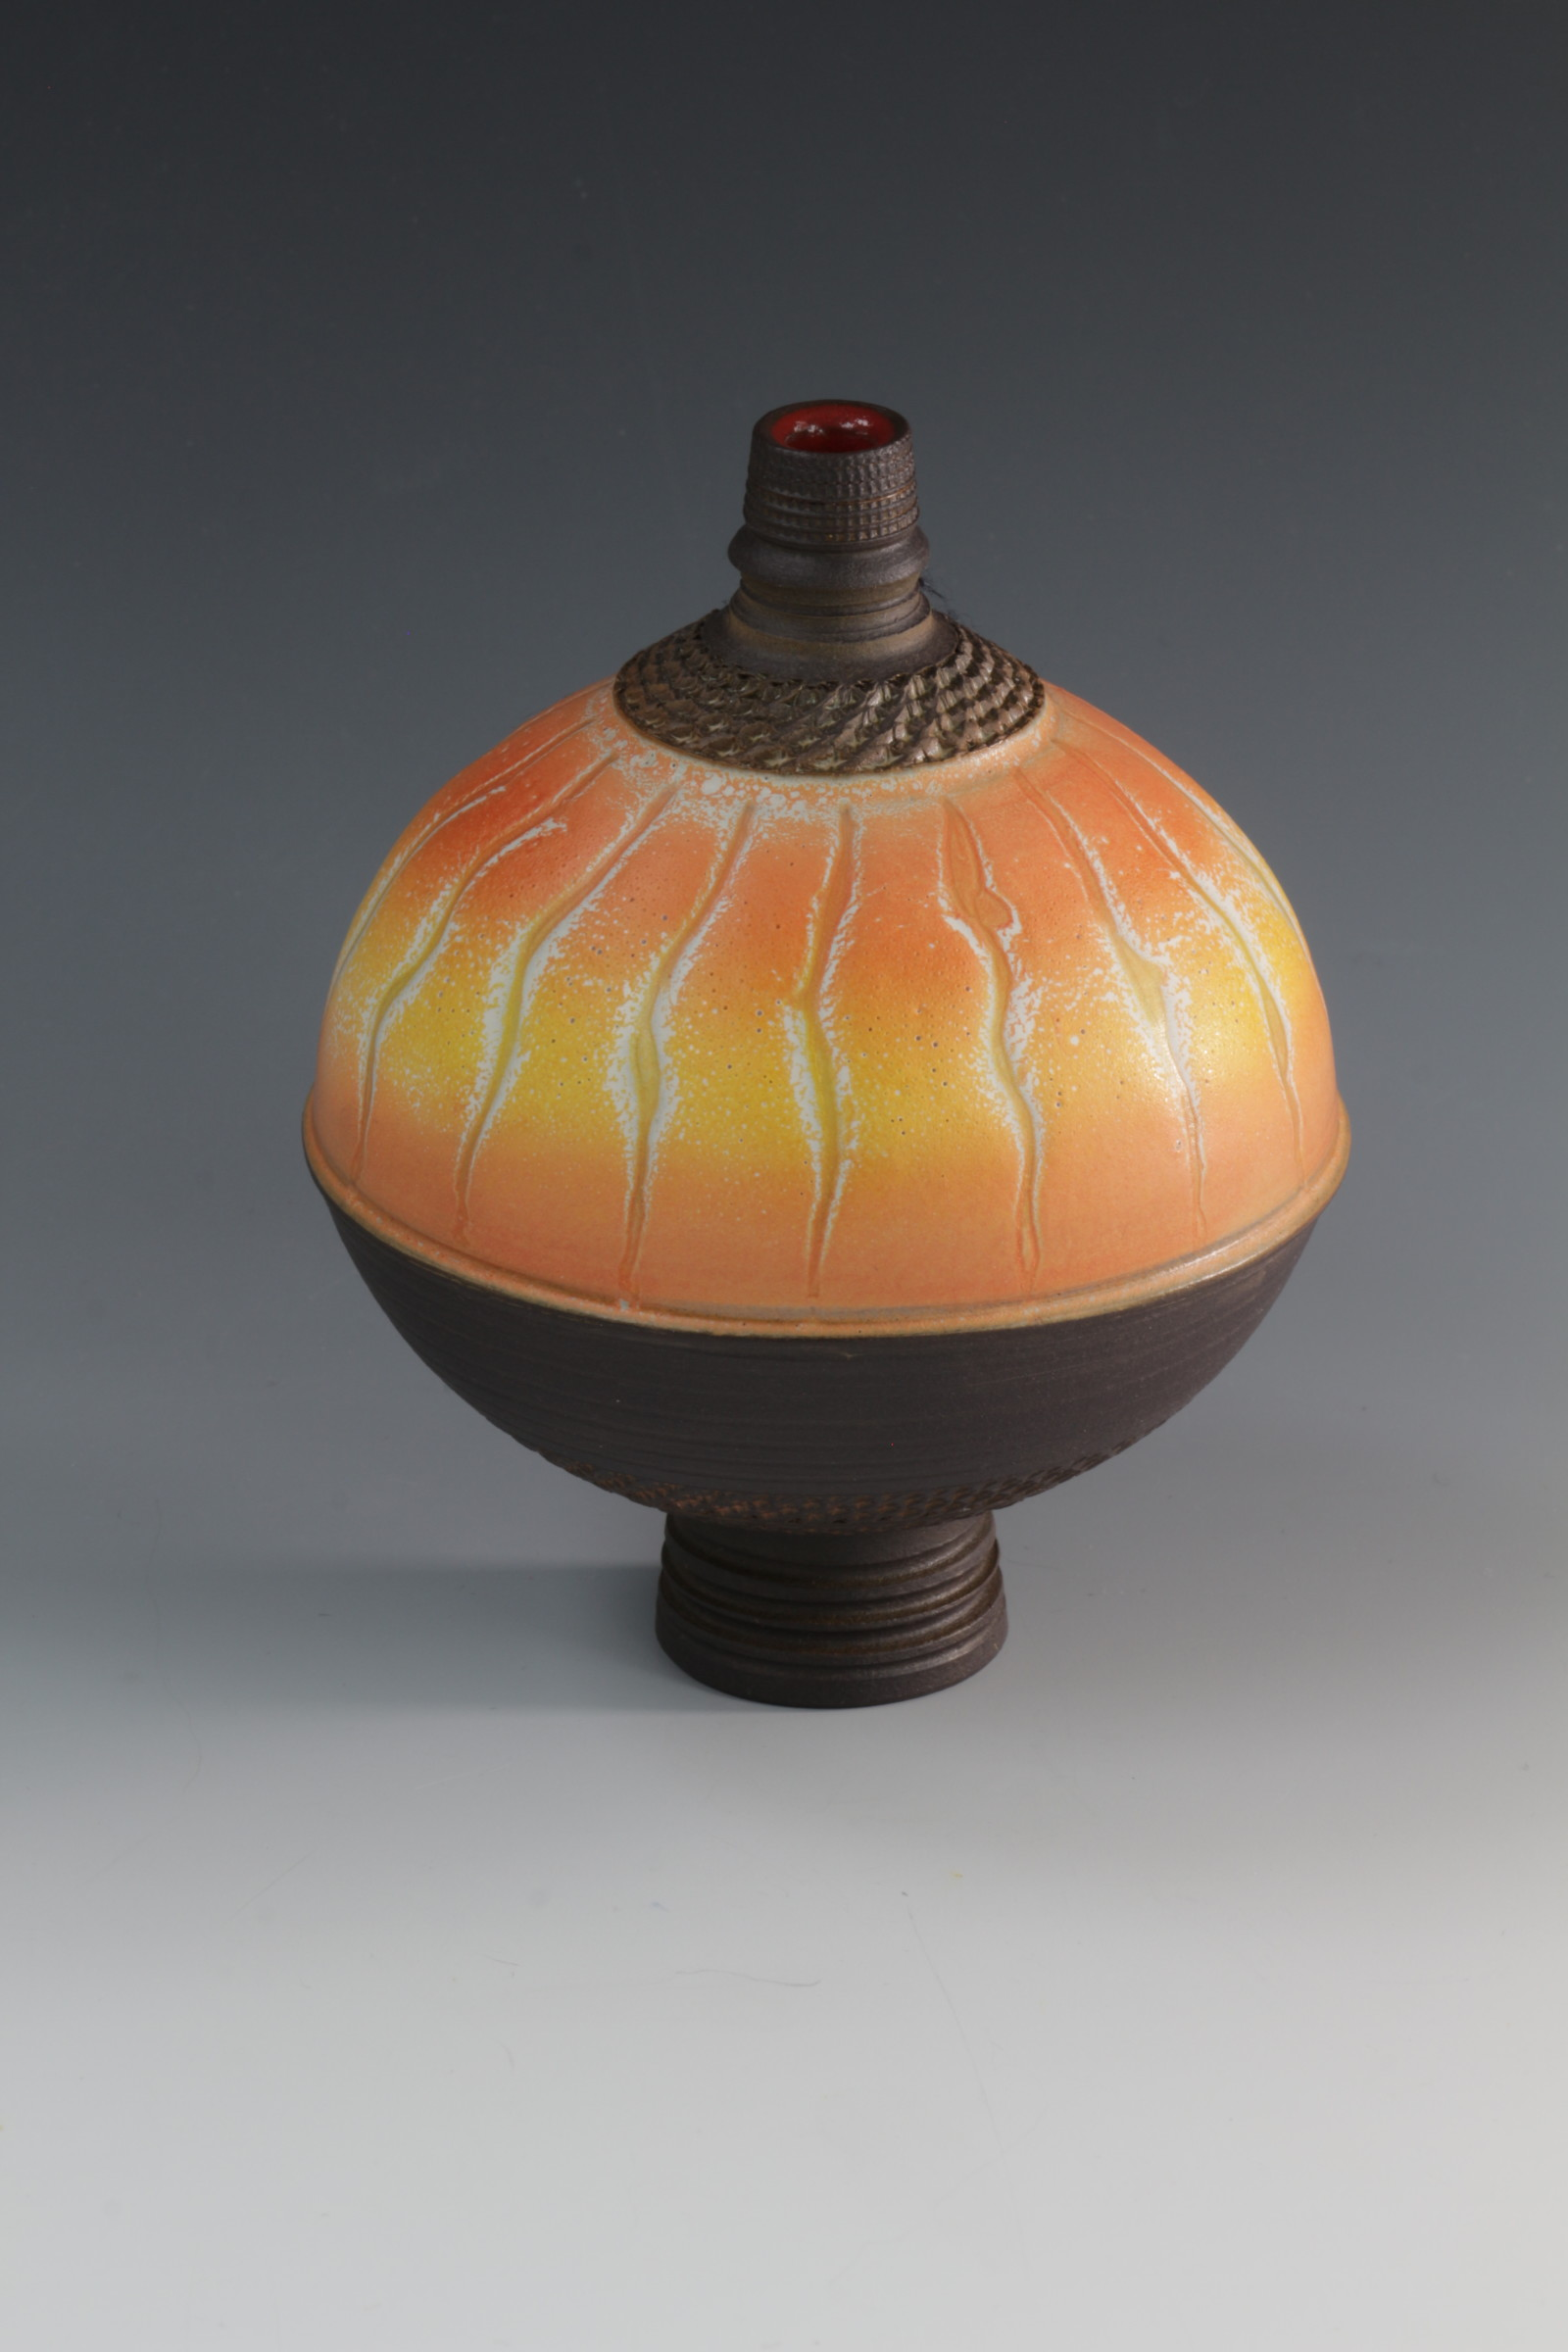 "<span class=""link fancybox-details-link""><a href=""/artists/61-geoffrey-swindell/works/6900-geoffrey-swindell-bud-vase-2020/"">View Detail Page</a></span><div class=""artist""><strong>Geoffrey Swindell</strong></div> <div class=""title""><em>Bud Vase</em>, 2020</div> <div class=""signed_and_dated"">impressed artist's seal to base</div> <div class=""medium"">porcelain</div><div class=""copyright_line"">Own Art: £ 17 x 10 Months, 0% APR</div>"